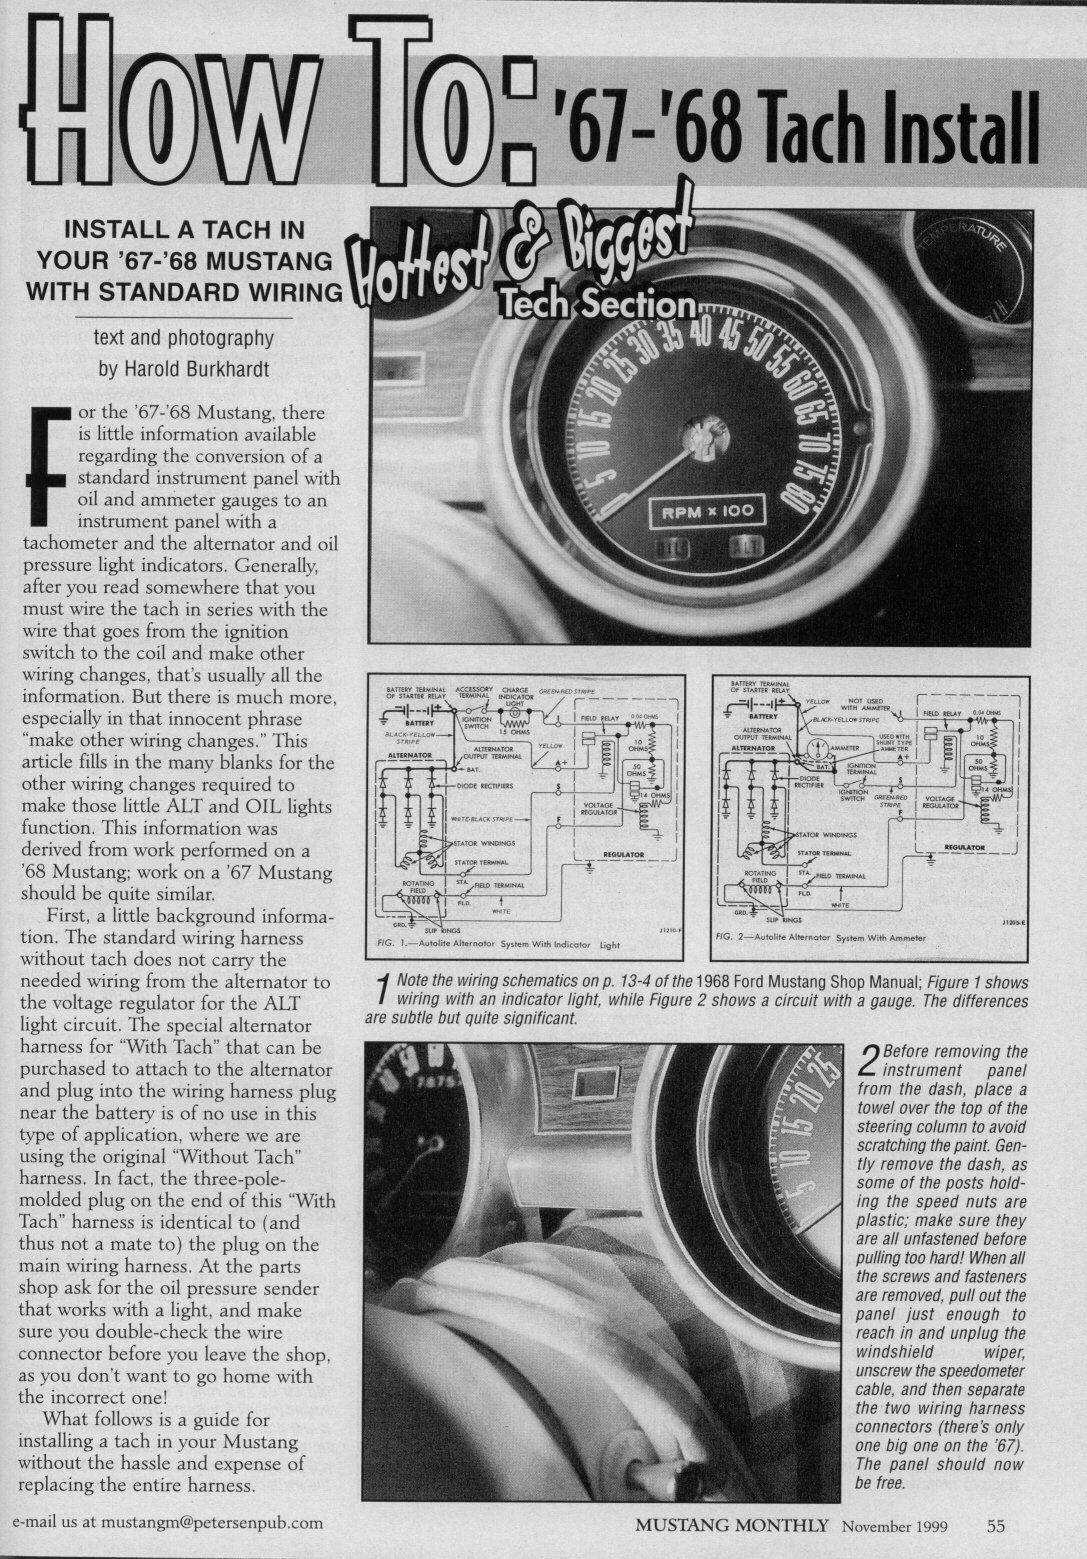 1968 mustang tach wiring diagram how to 1967 1968 mustang tach install  november 1999  mustang  how to 1967 1968 mustang tach install